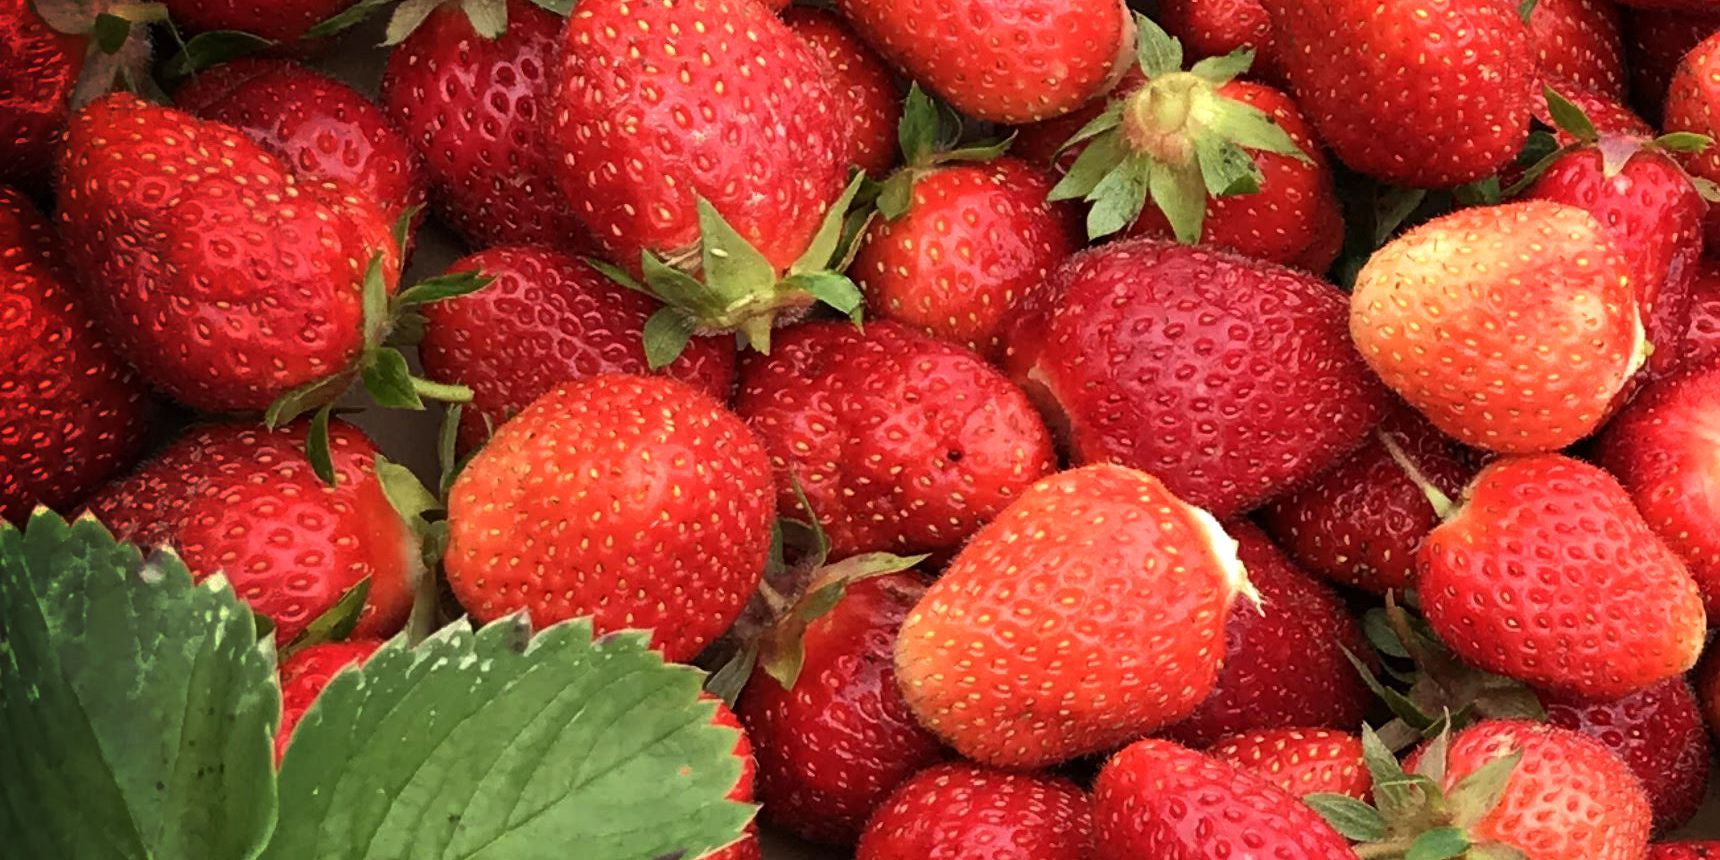 Rain is not going to dampen strawberry season at Patterson Fruit Farm in Chesterland